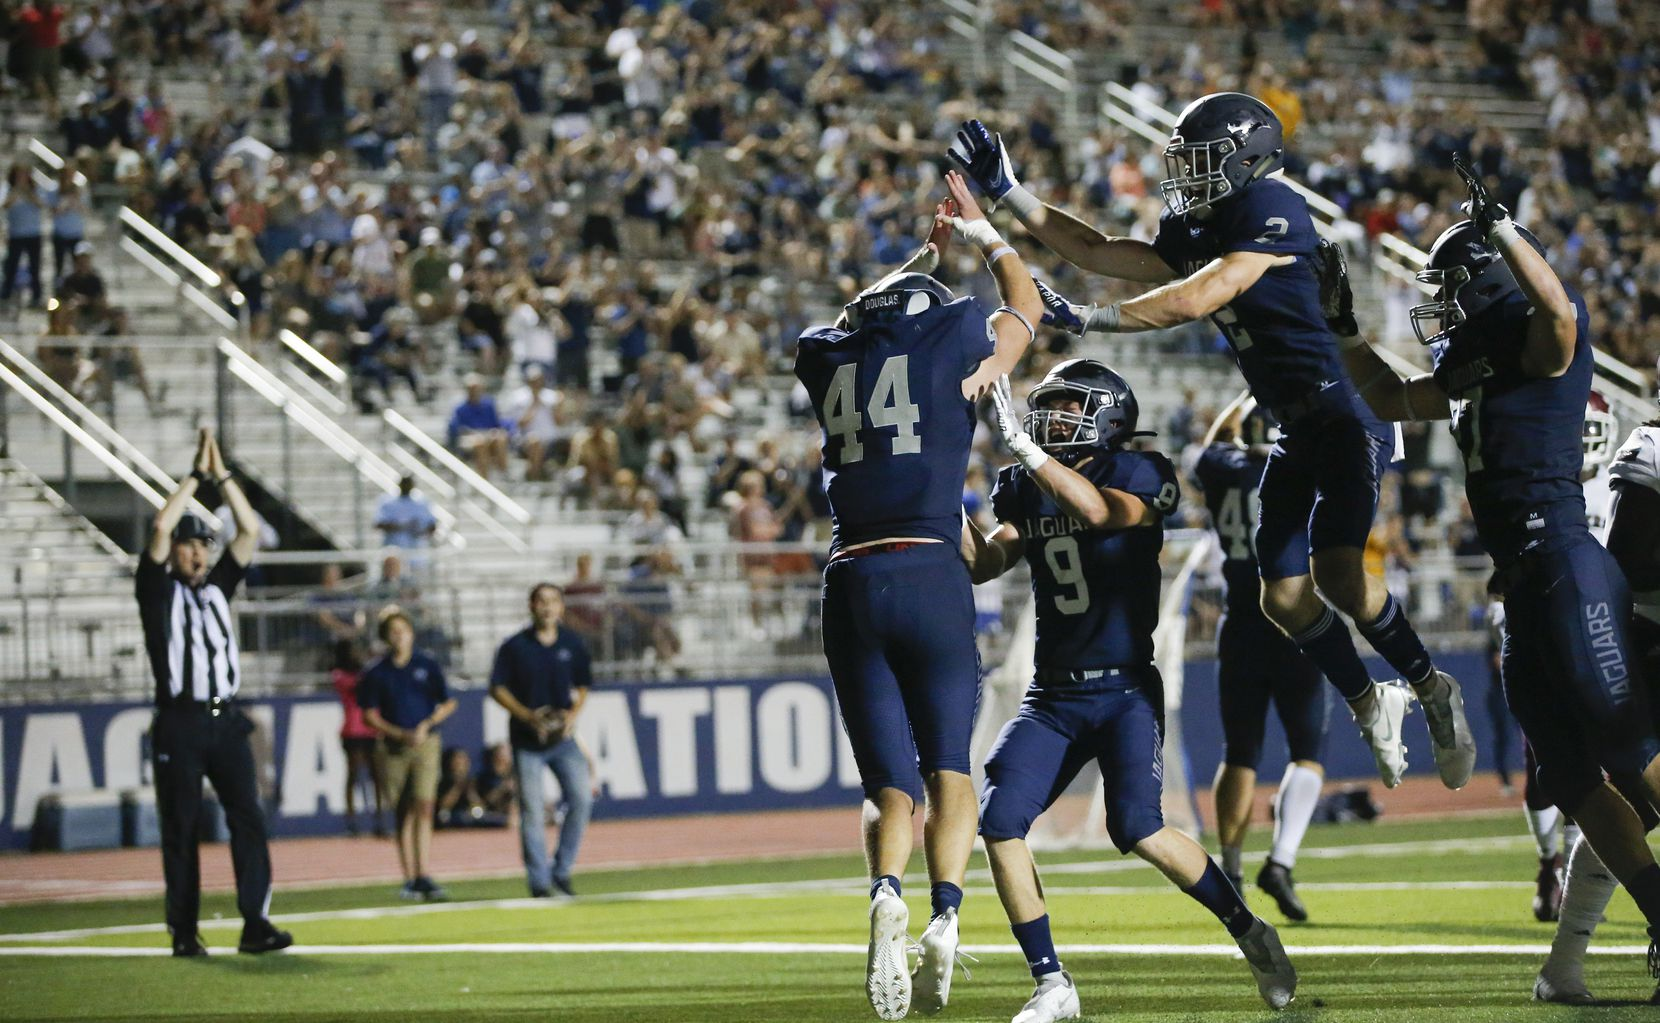 Flower Mound senior linebacker Ryan Brubaker (44) is congratulated by teammates after tackling Mesquite senior running back KD Lee in the end zone for a safety during the second half of a high school football game at Flower Mound High School, Friday, August 27, 2021. (Brandon Wade/Special Contributor)